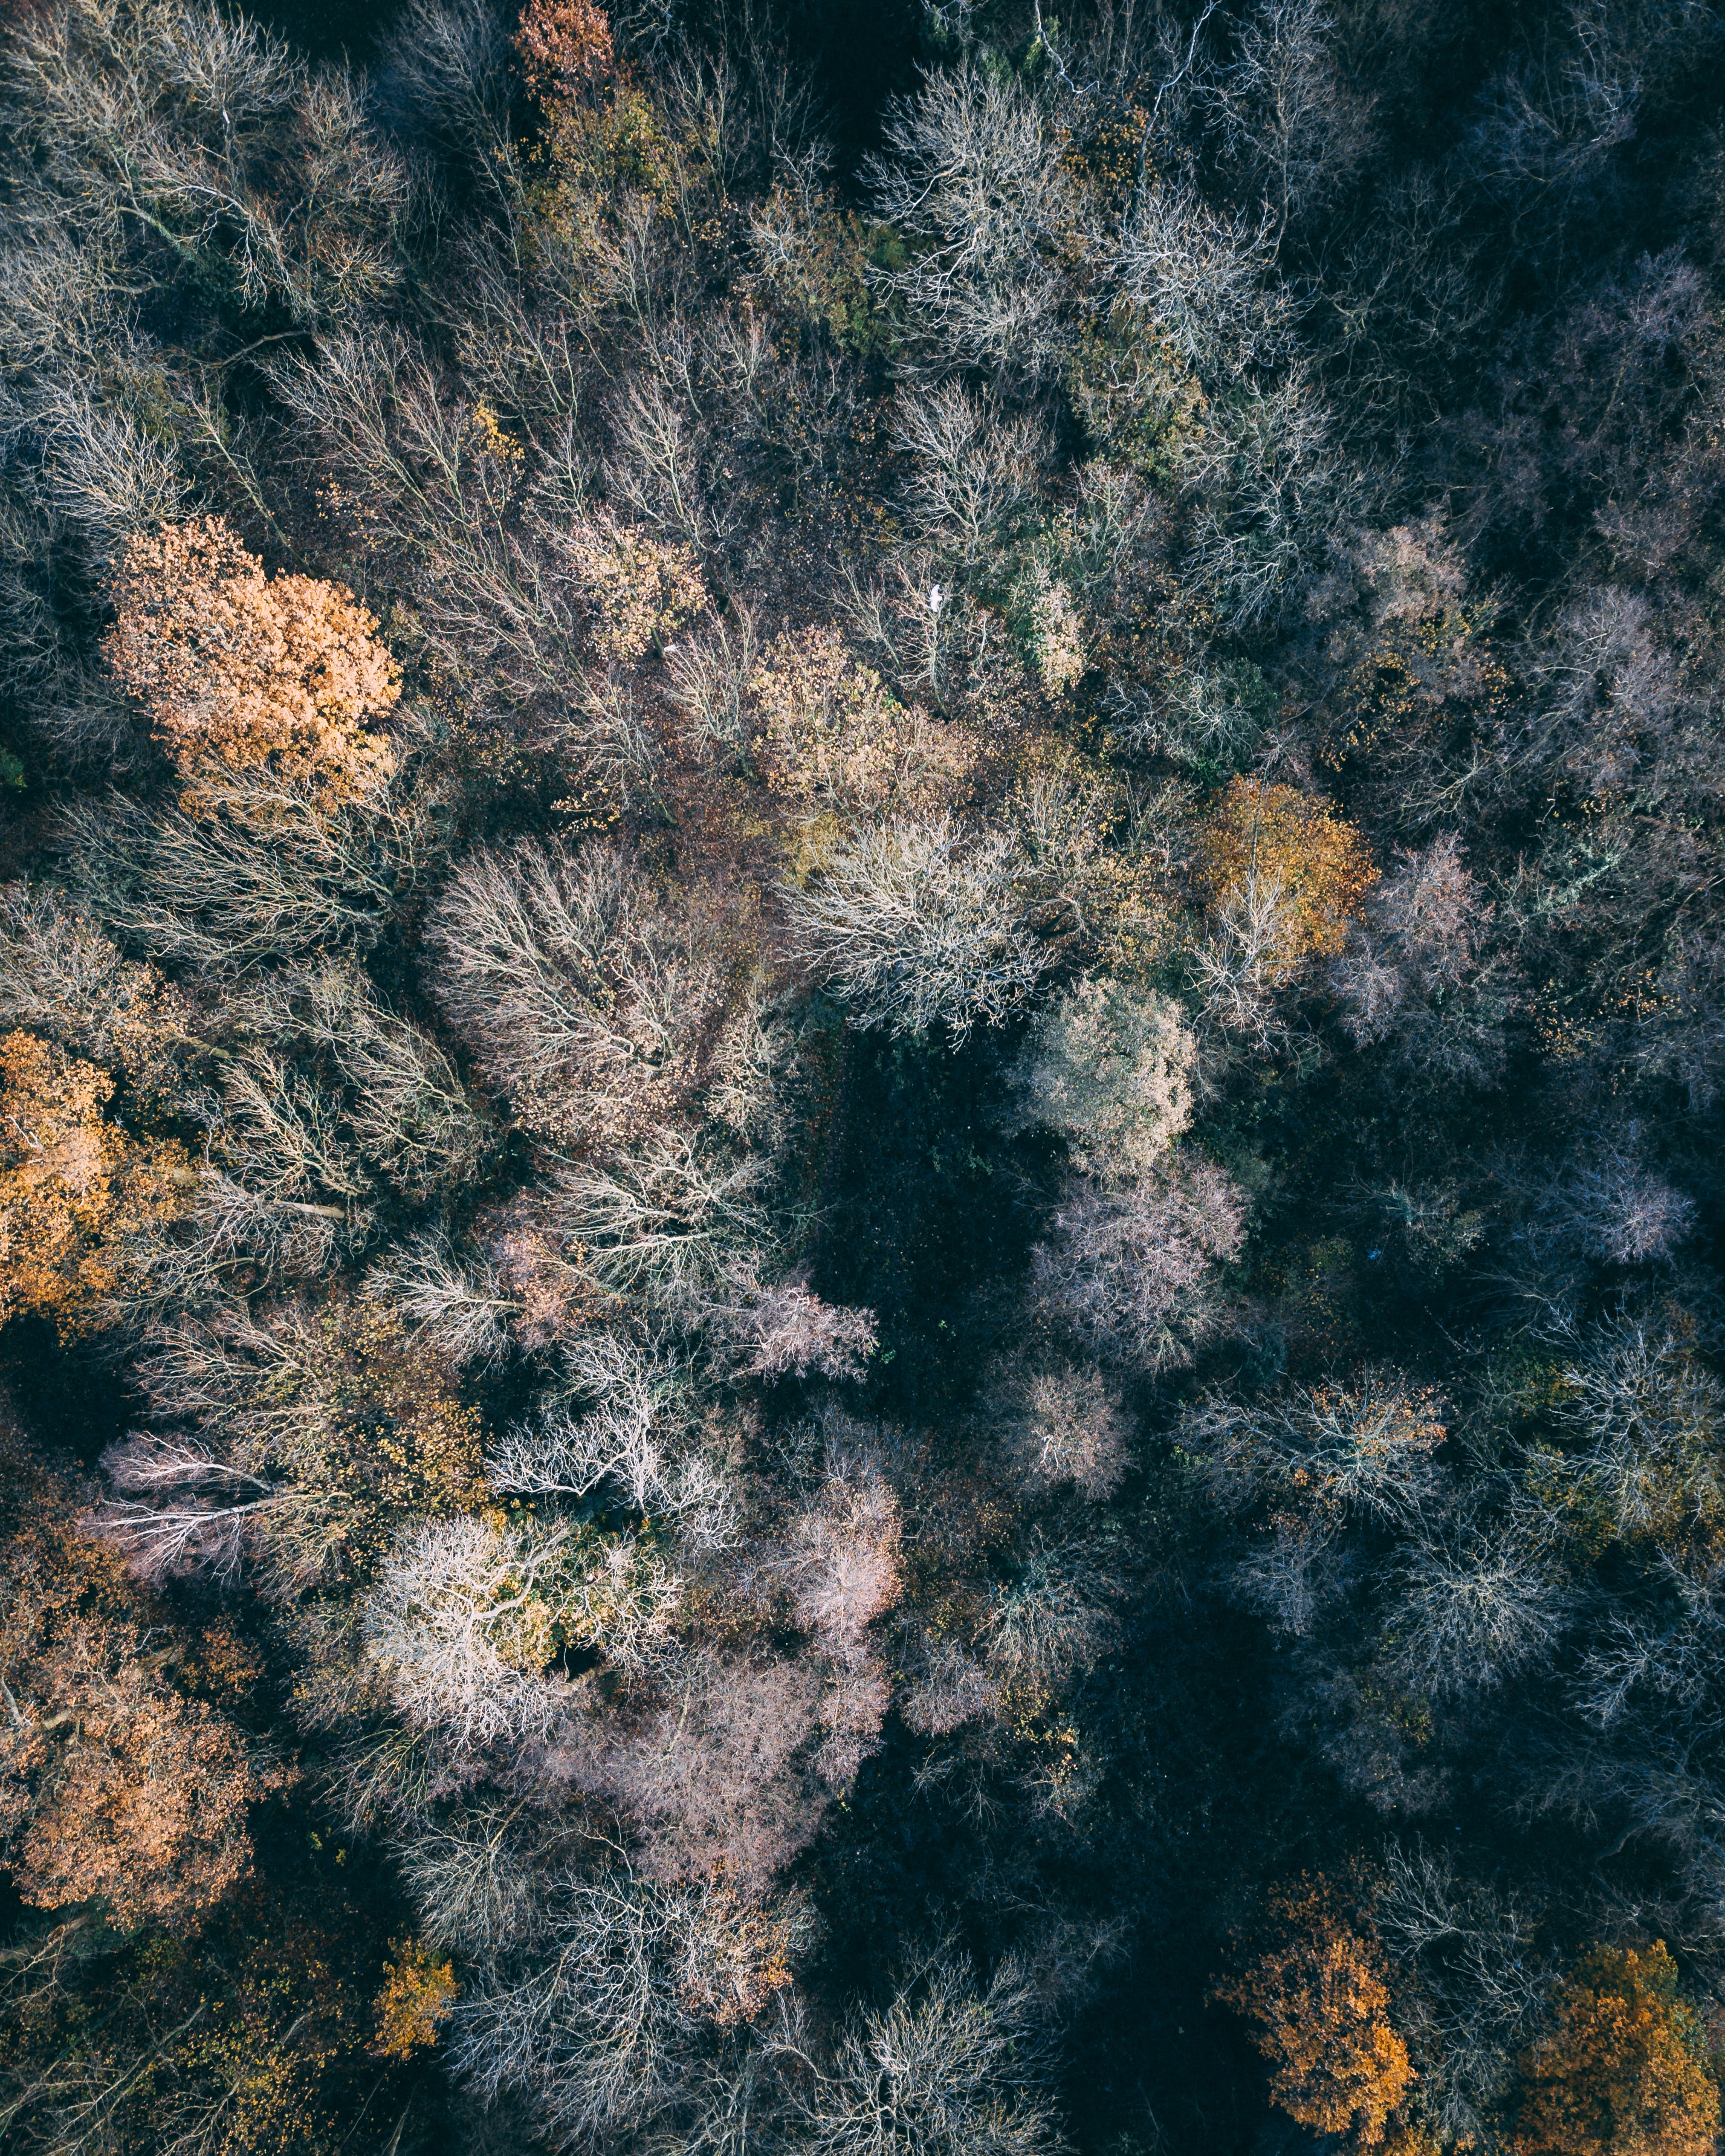 aerial photography of bare trees during daytime